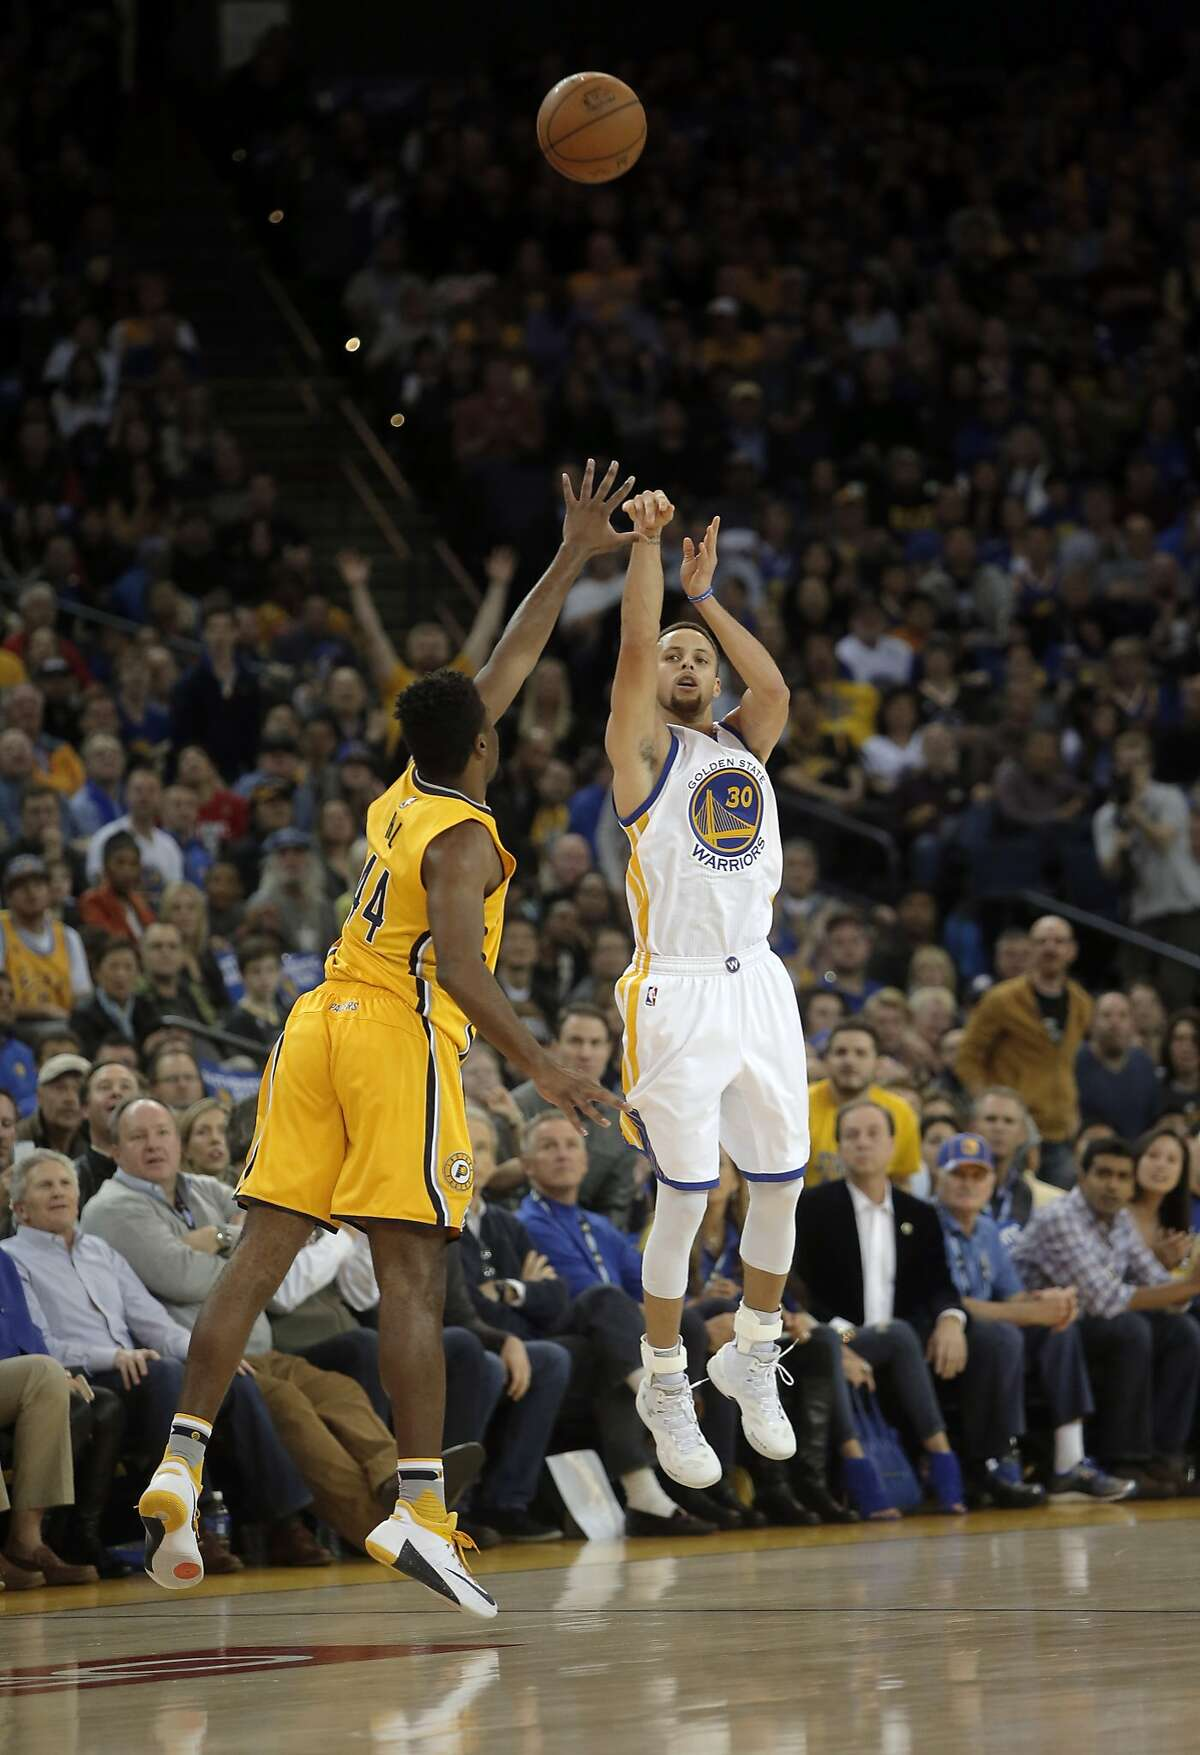 Warriors' Stephen Curry, 30 hits a near half court 3-point-shot to end the first half, as the Golden State Warriors take on the Indiana Pacers in NBA action during the first half at Oracle Arena on Fri. January 22, 2016, in Oakland, Calif.